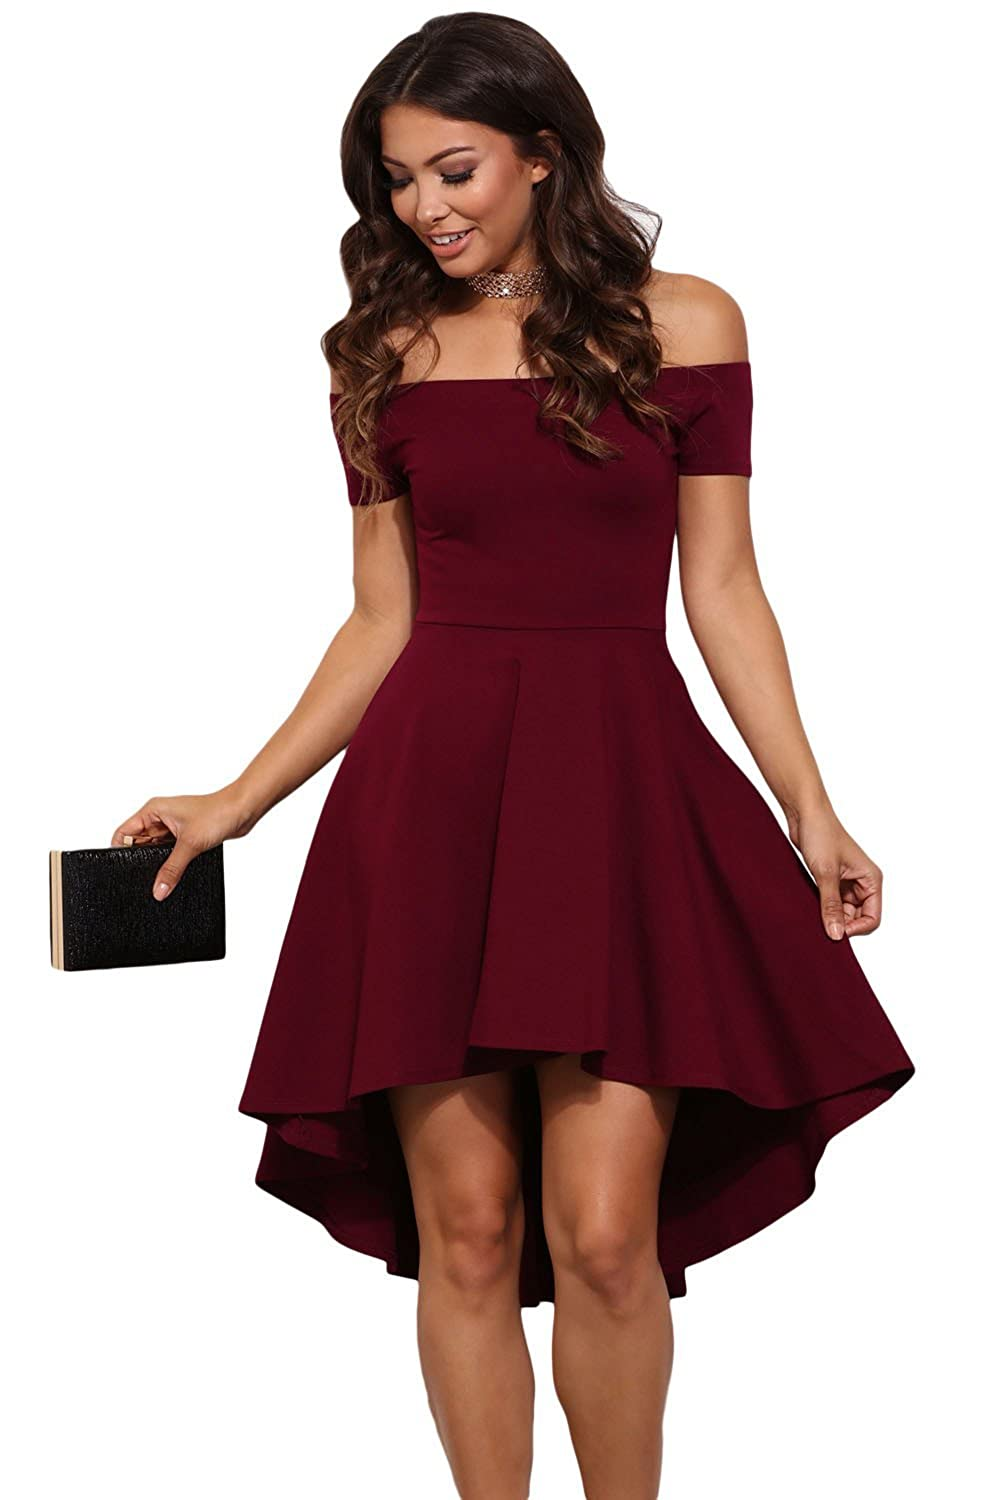 Boldgal Women s Off-Shoulder Skater Dress (Red)  Amazon.in  Clothing    Accessories 6069b98f23